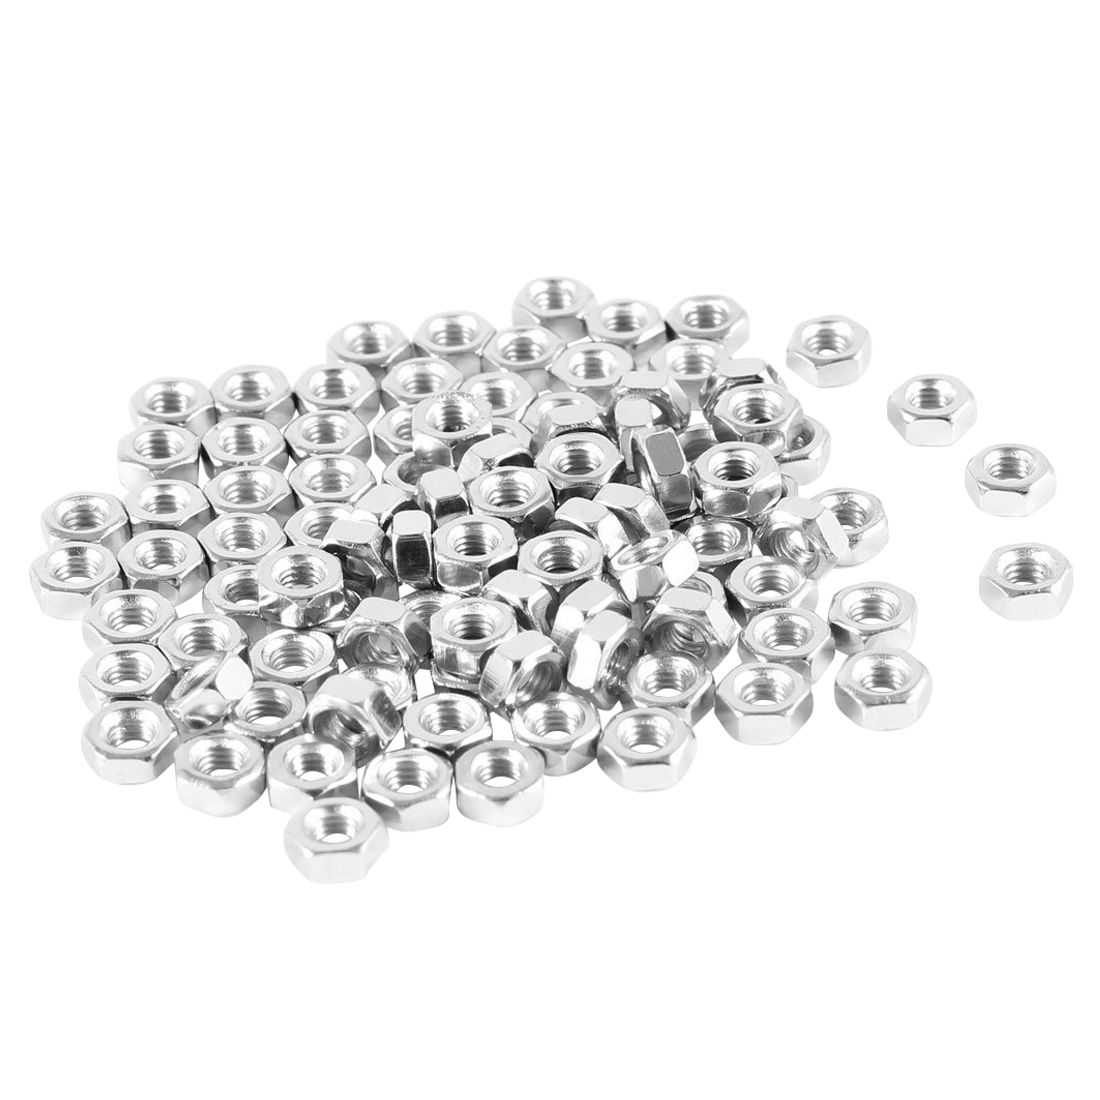 100Pcs M3 3mm Female Thread Hex Metal Nut Fastener Silver Tone